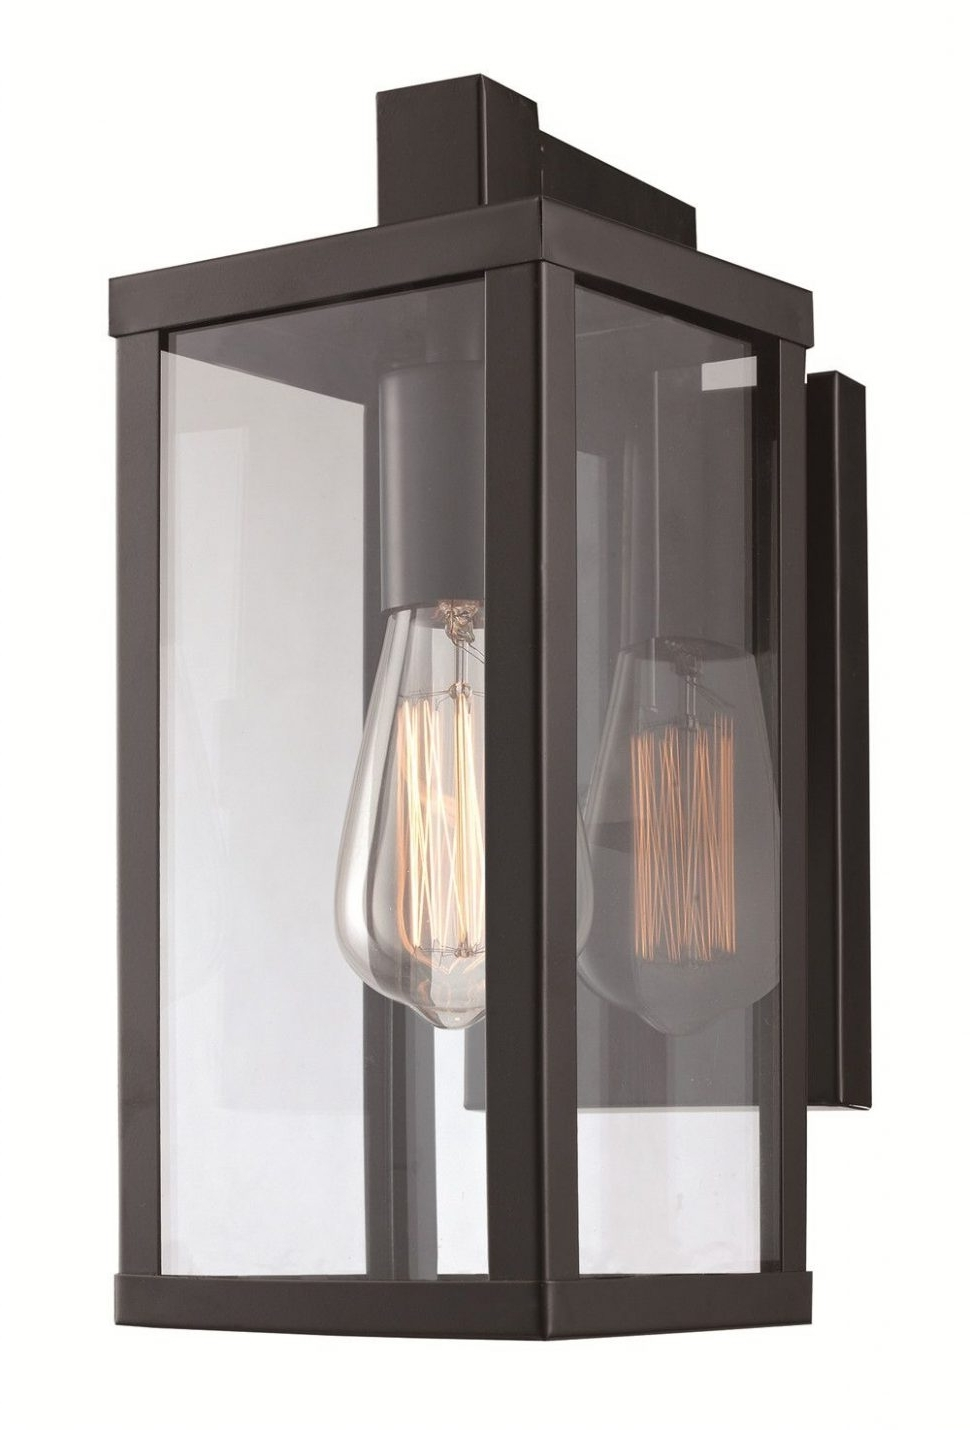 Well Liked Endon Lighting Outdoor Wall Lanterns For Furniture : Outdoor Lighting Lights Wall Lanterns Sea Gull Lantern (View 9 of 20)